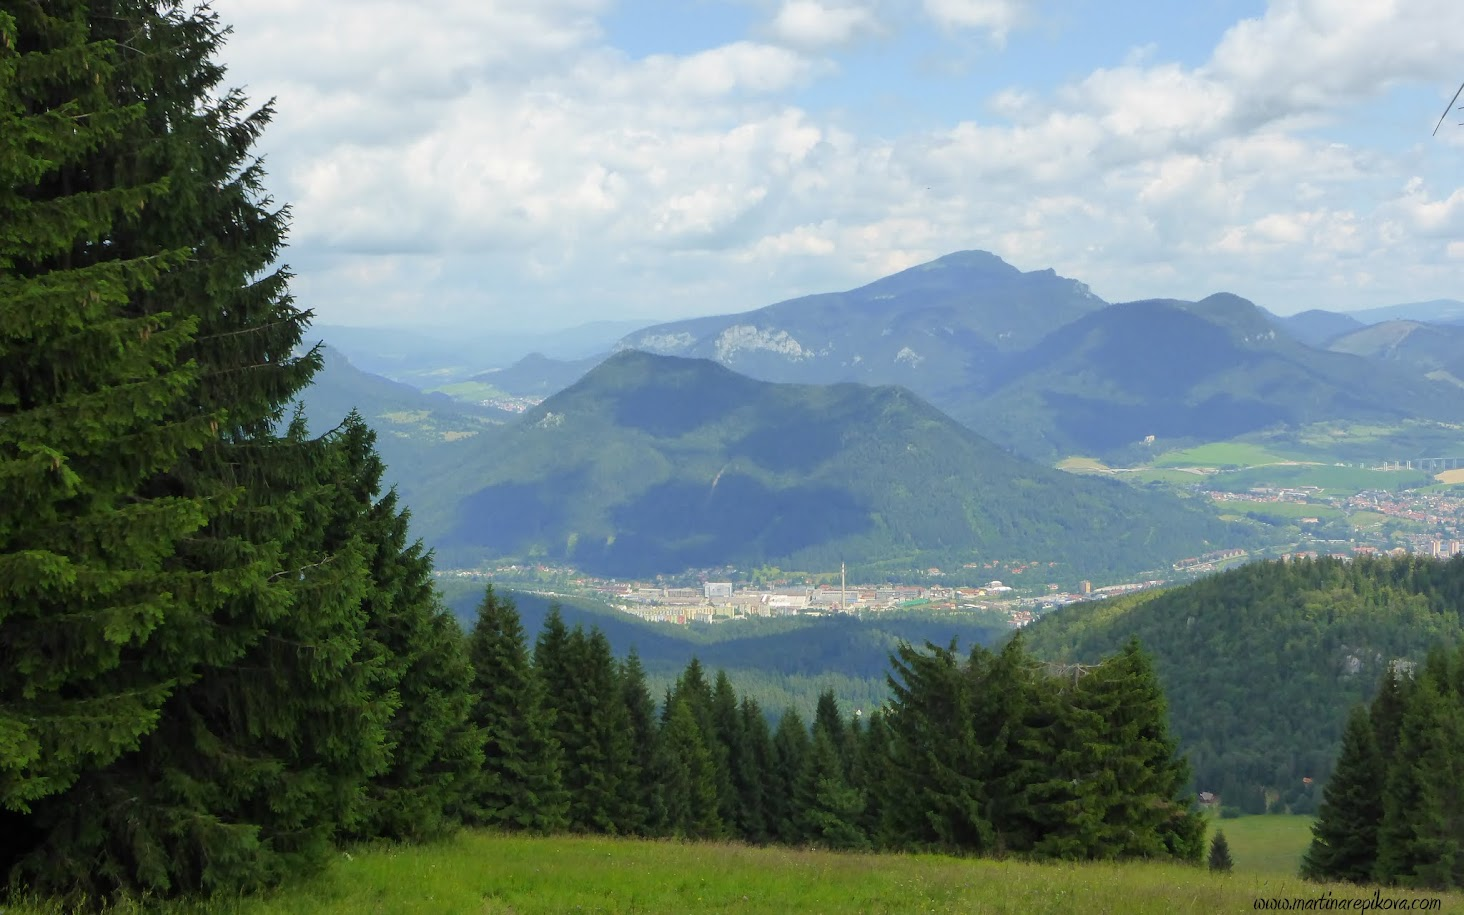 View north from Malino Brdo, Slovakia